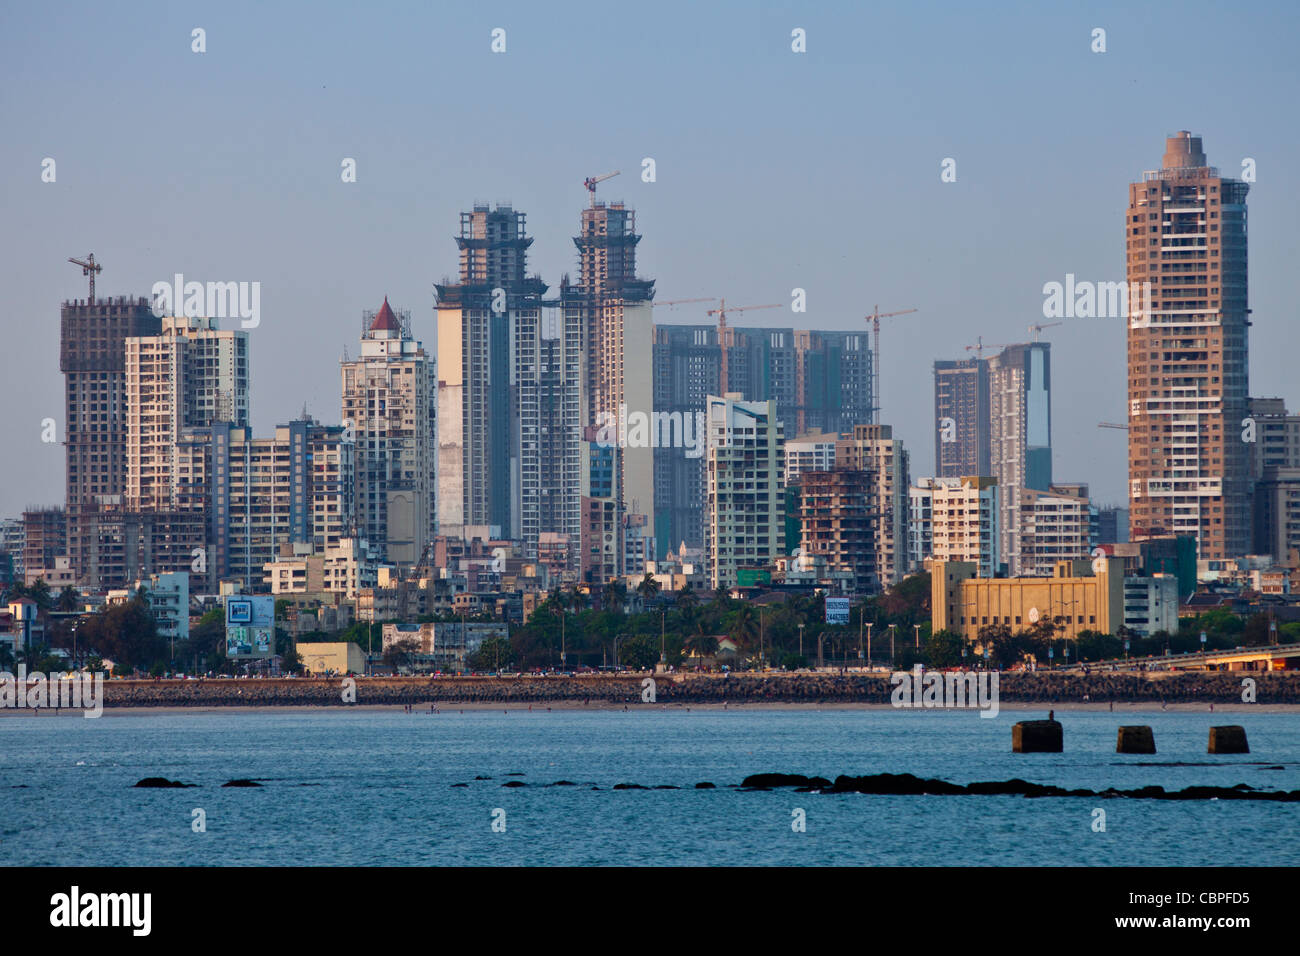 Developing business district shows economic growth by Imperial twin towers in Tardeo South Mumbai, India from Nariman - Stock Image